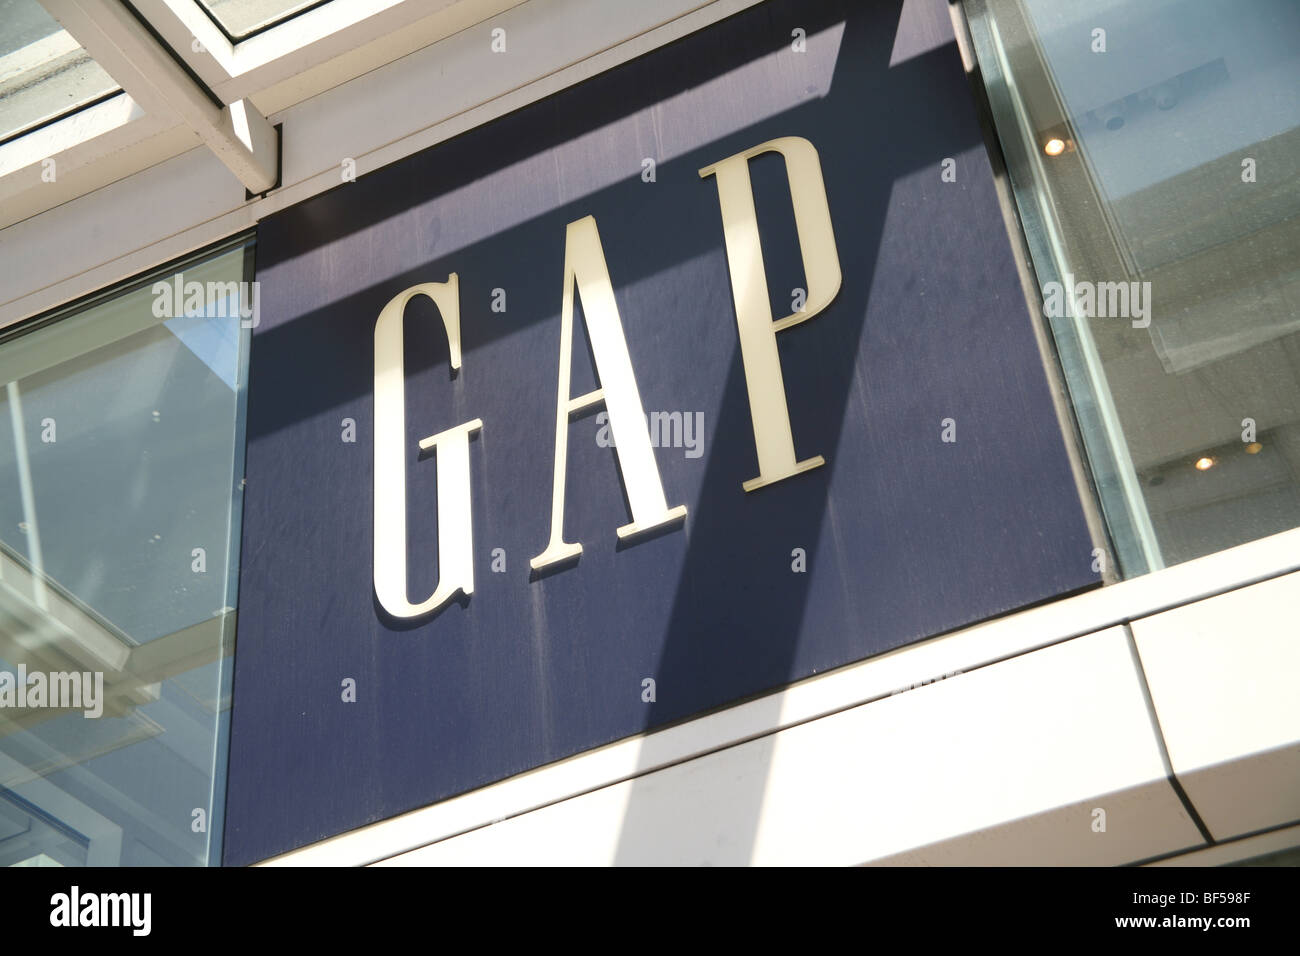 Exterior of Gap store. No property release. Editorial usage only. - Stock Image